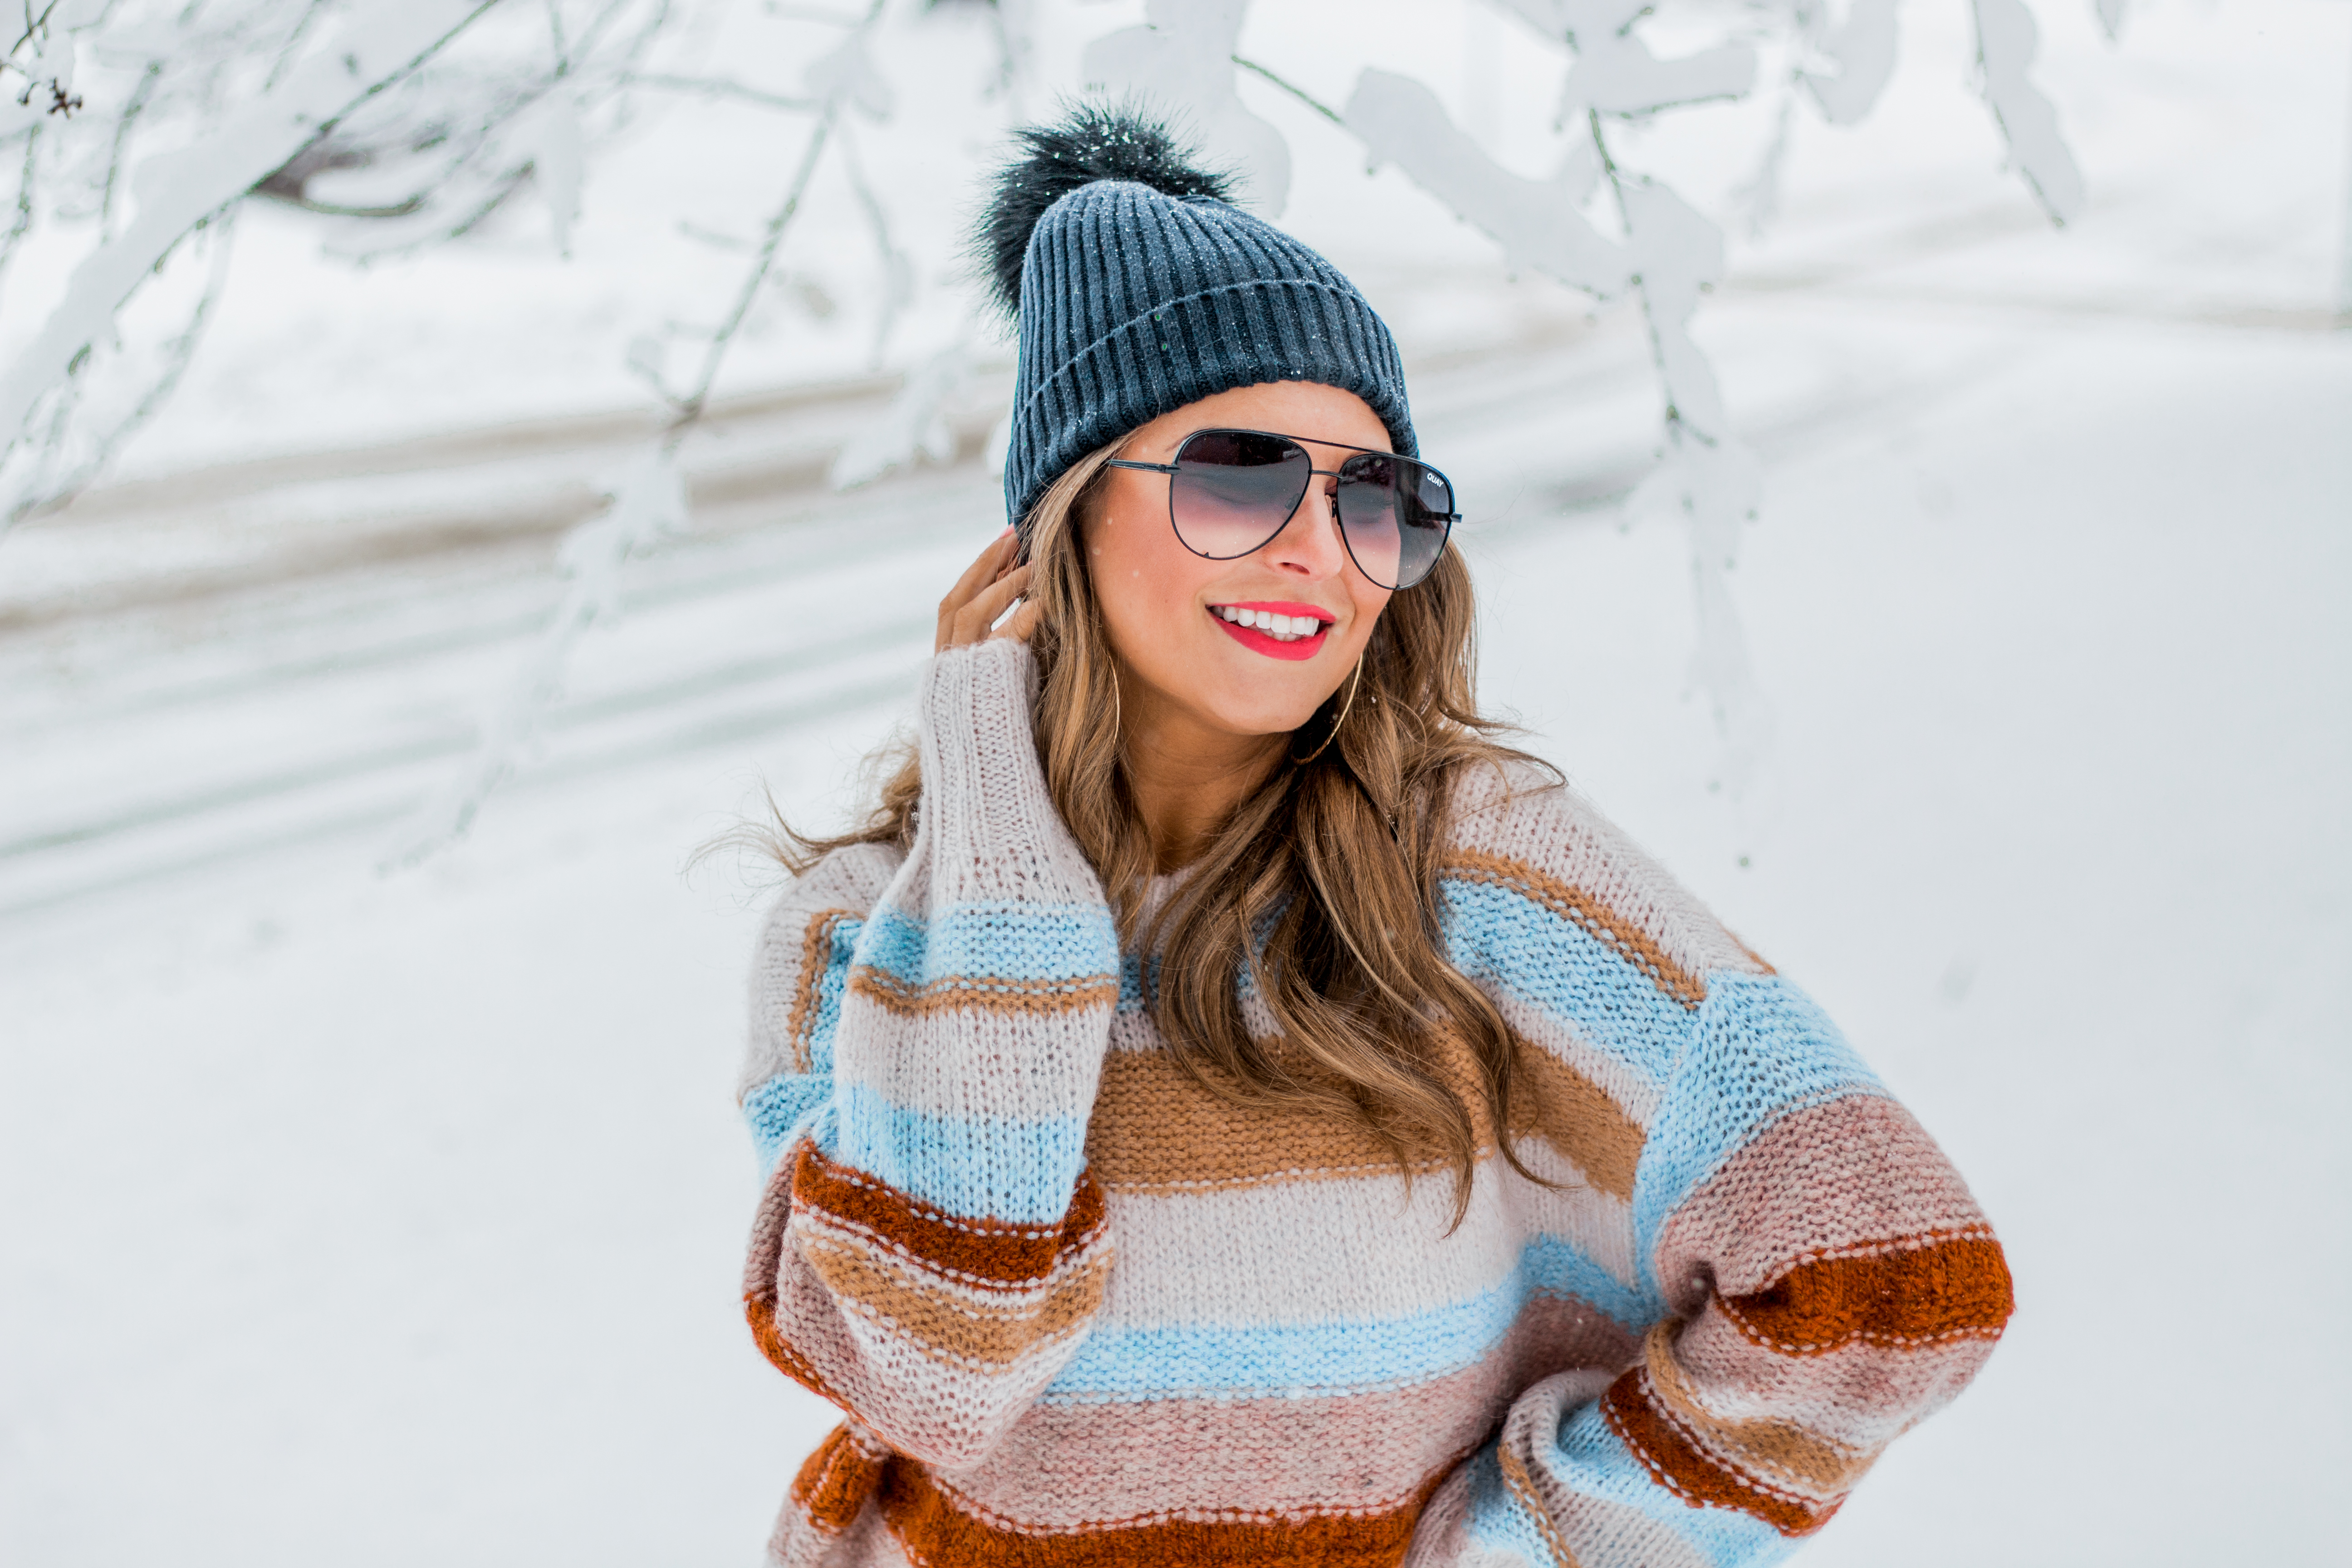 Women's Fashion - American Eagle Sweater - Hunter Boots - Beanie - Snow Day - OOTD - Fashion Blogger - Winter Fashion - 6